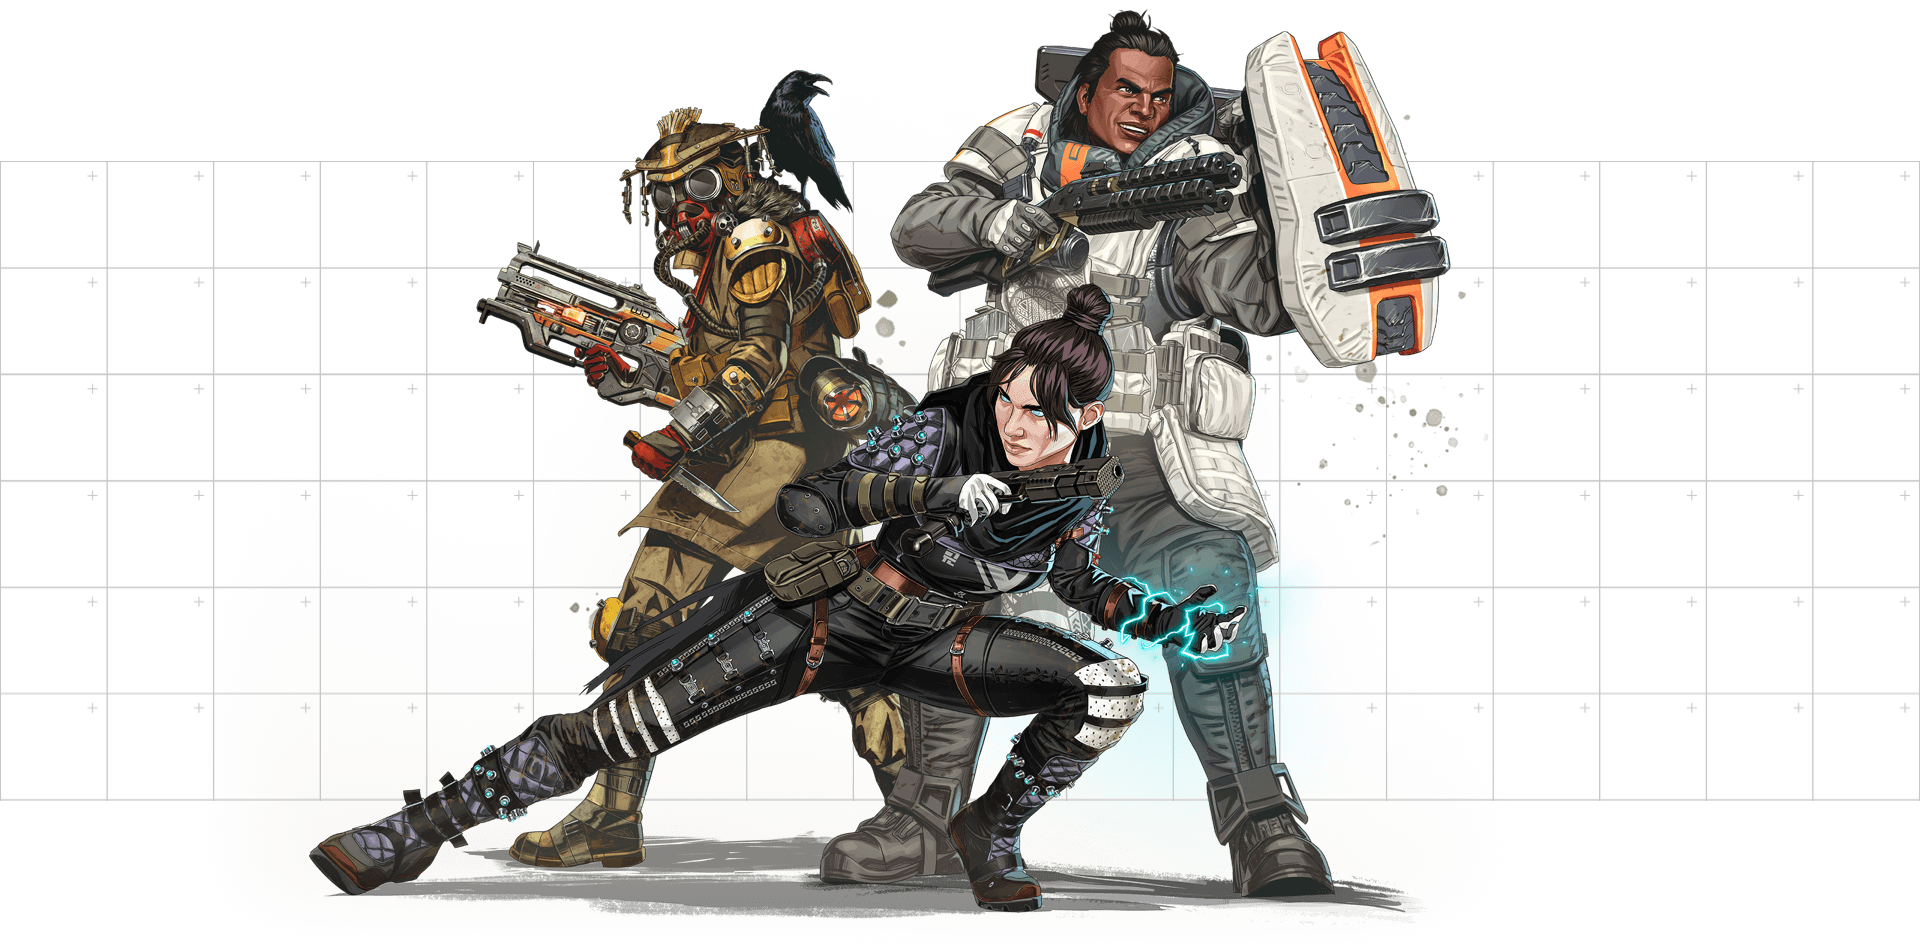 Rumor Ea S Hit Game Apex Legends To Use Crypto For P2p Trading Including transparent png clip art, cartoon, icon, logo, silhouette, watercolors, outlines, etc. game apex legends to use crypto